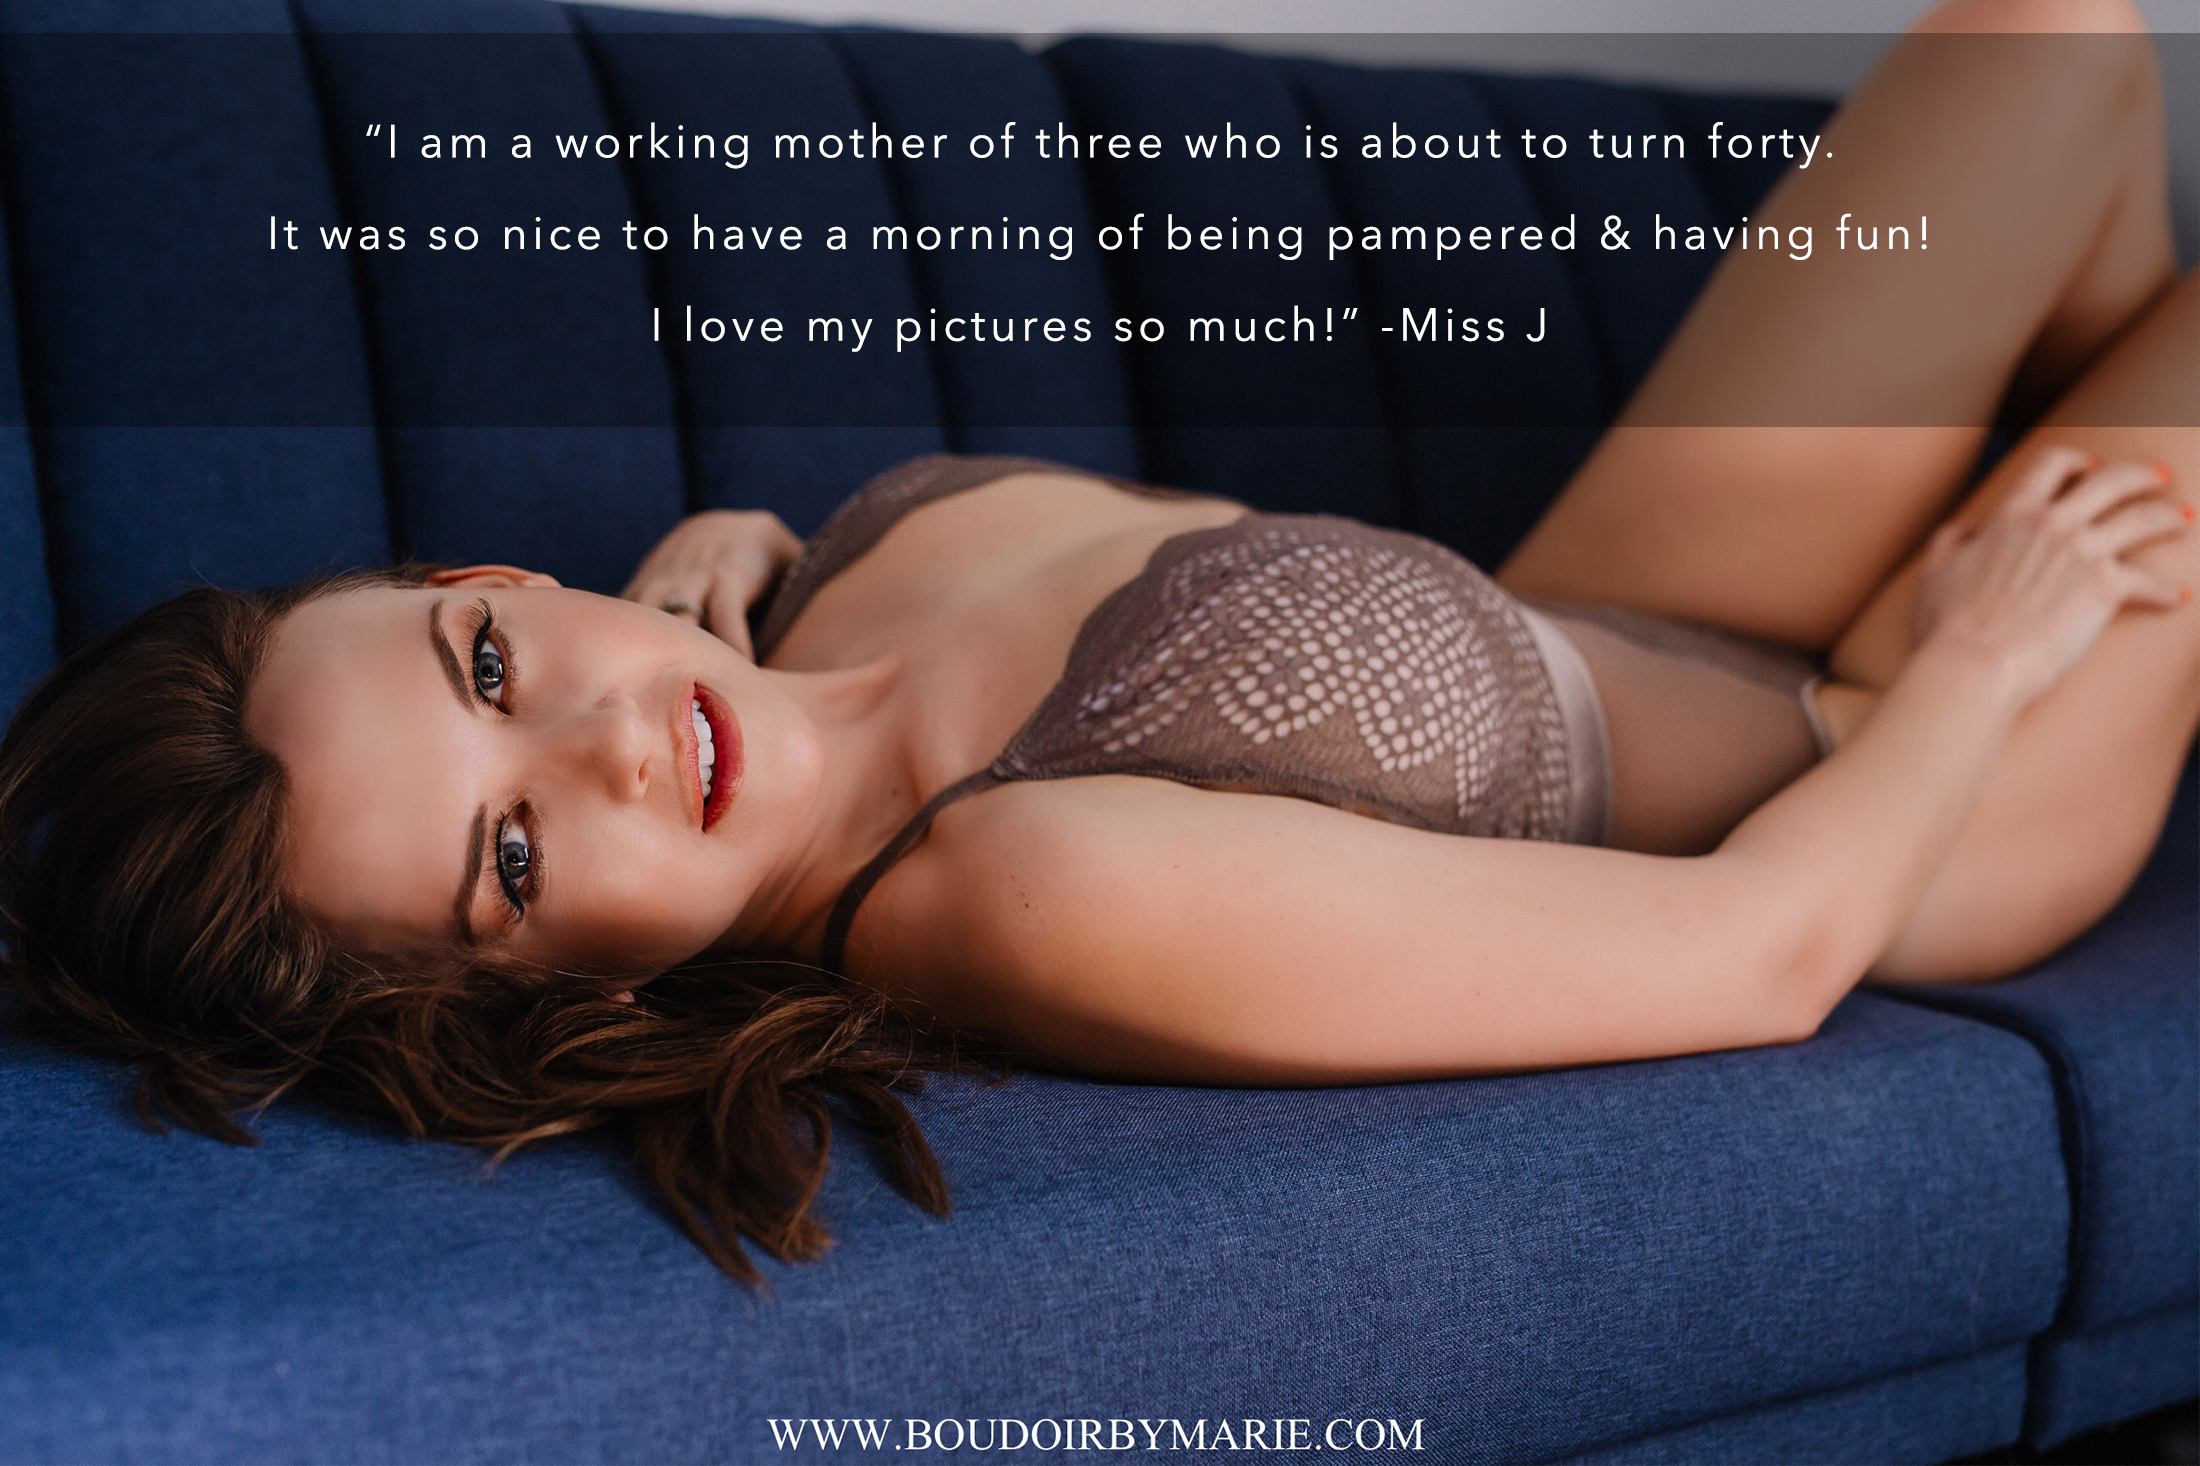 BoudoirbyMarie-Photography-Reviews-03.jpg